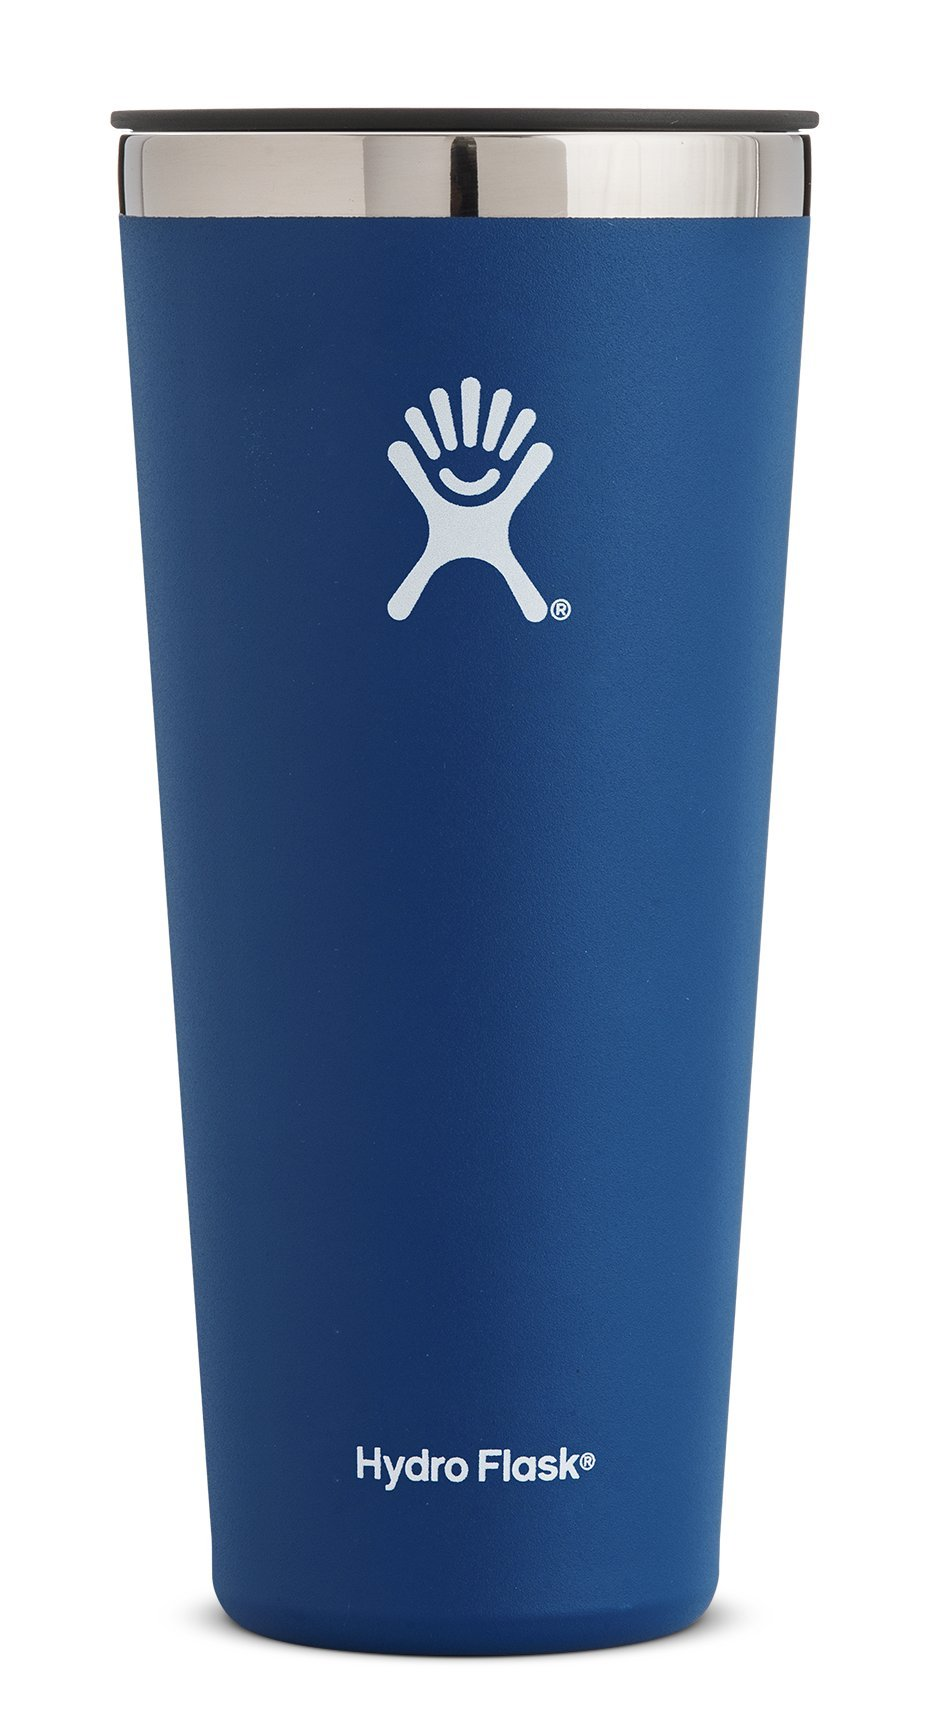 Hydro Flask 32 oz Tumbler Cup | Stainless Steel & Vacuum Insulated | Press-In Lid | Cobalt